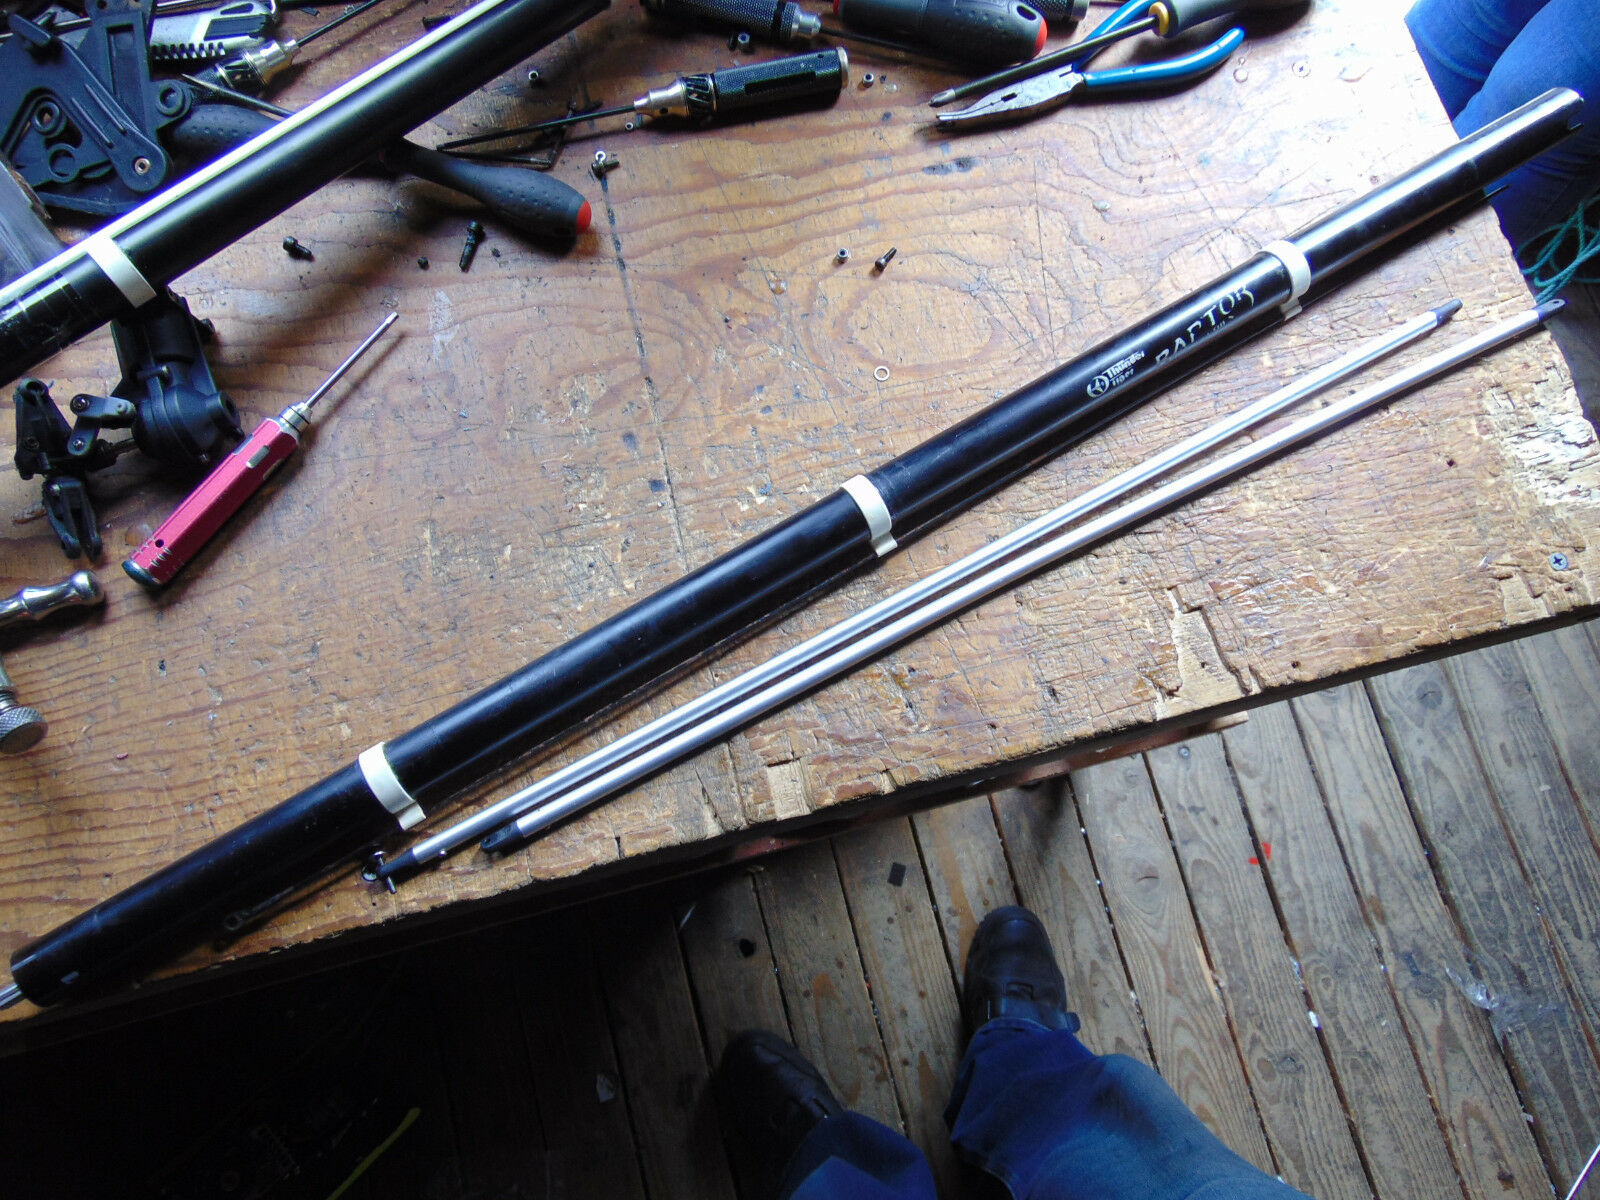 RAPTOR 60 TAIL BOOM ASSEMBLY C W TORQUE DRIVE, PITCH ROD & SUPPORTS